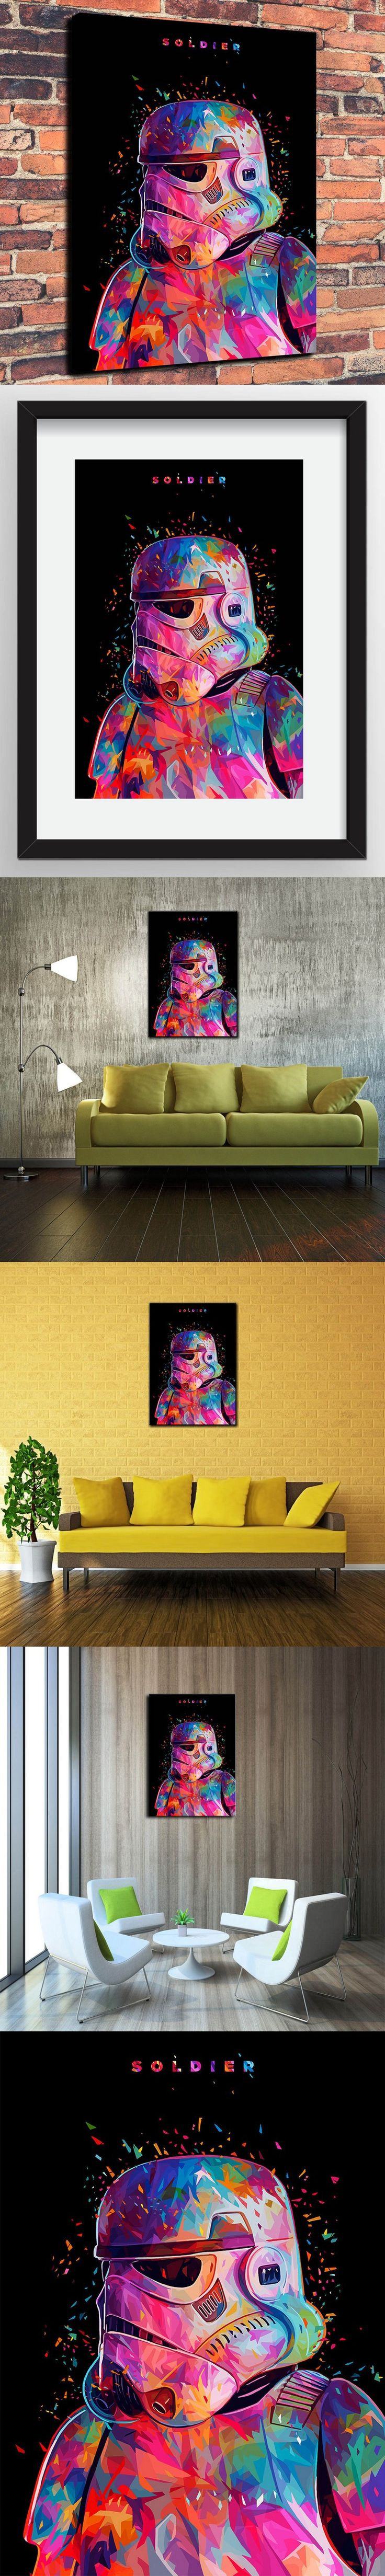 Canvas Prints Wall Art Decorative Painting Western Home Decor Which Star Wars Slodier( No Framed ) $22